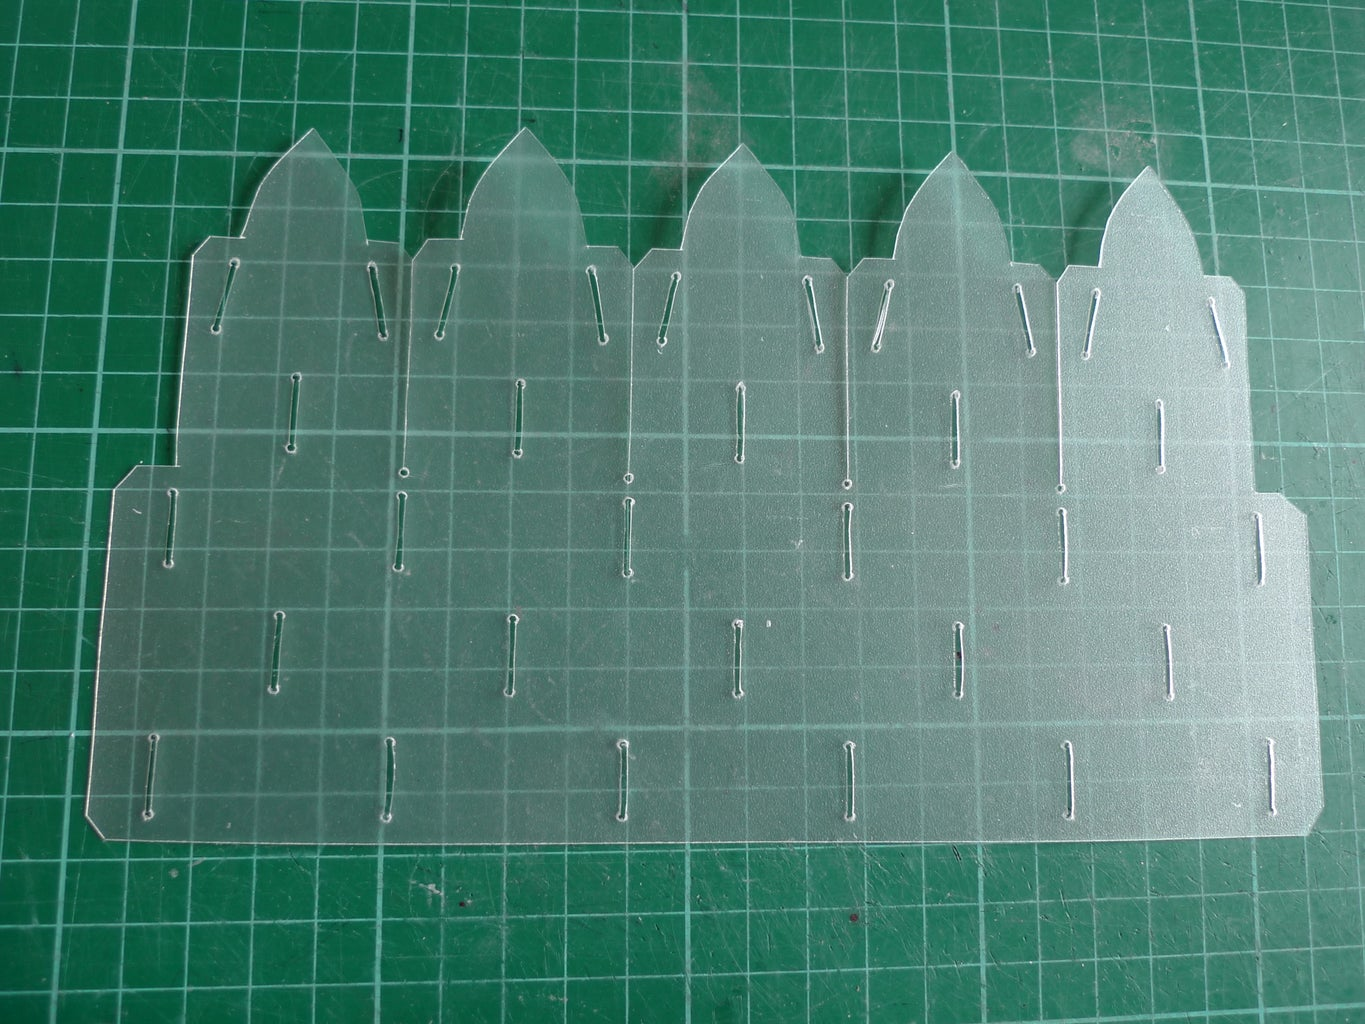 Assemblying the Templates